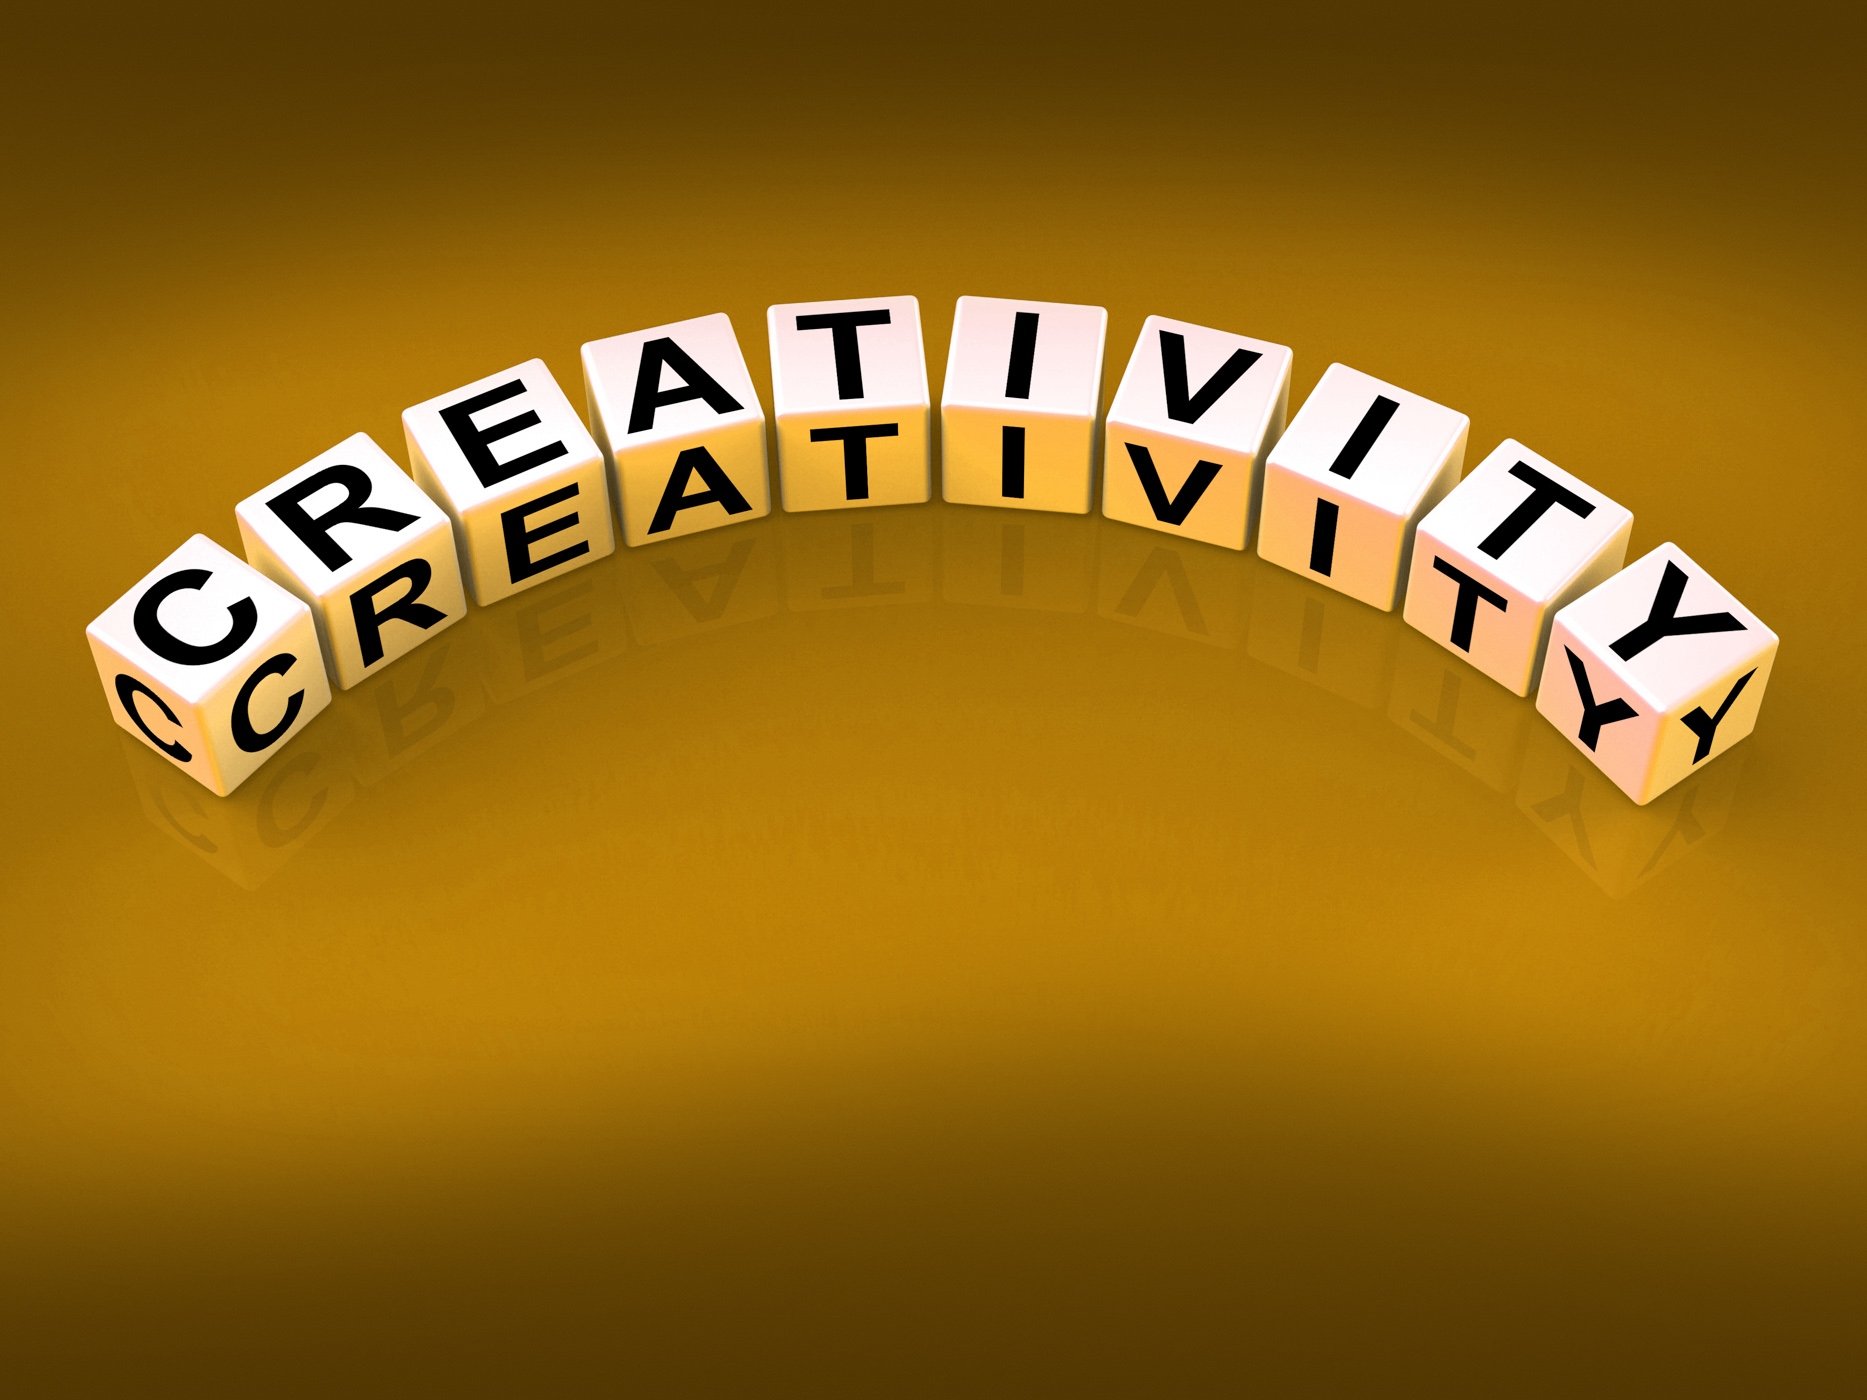 Creativity dice mean inventiveness inspiration and ideas photo